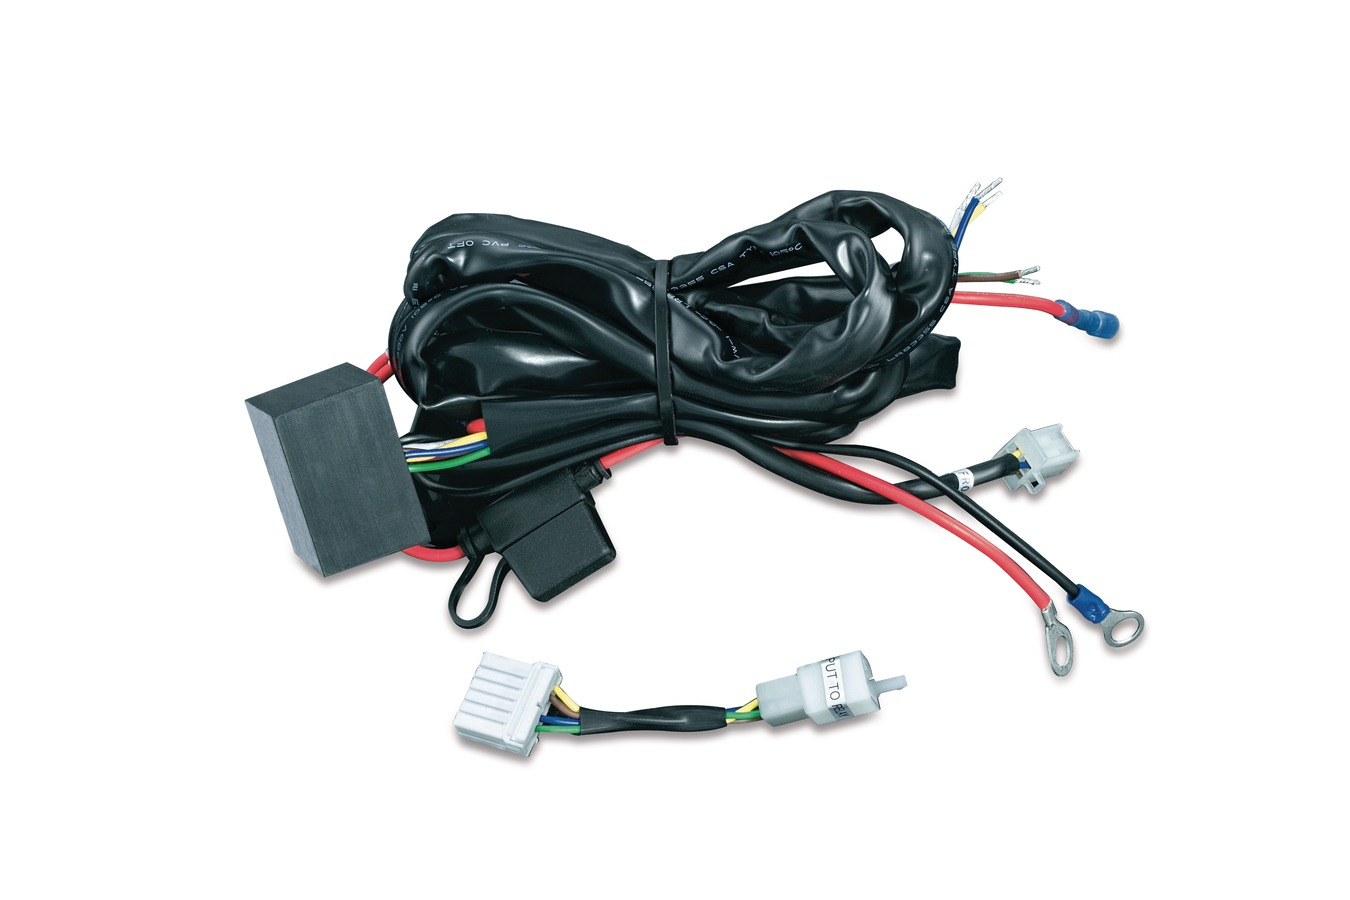 Trailer Wiring Harnesses | Trailer Hitches & Wiring | Touring - Trailer Wiring Diagram Za